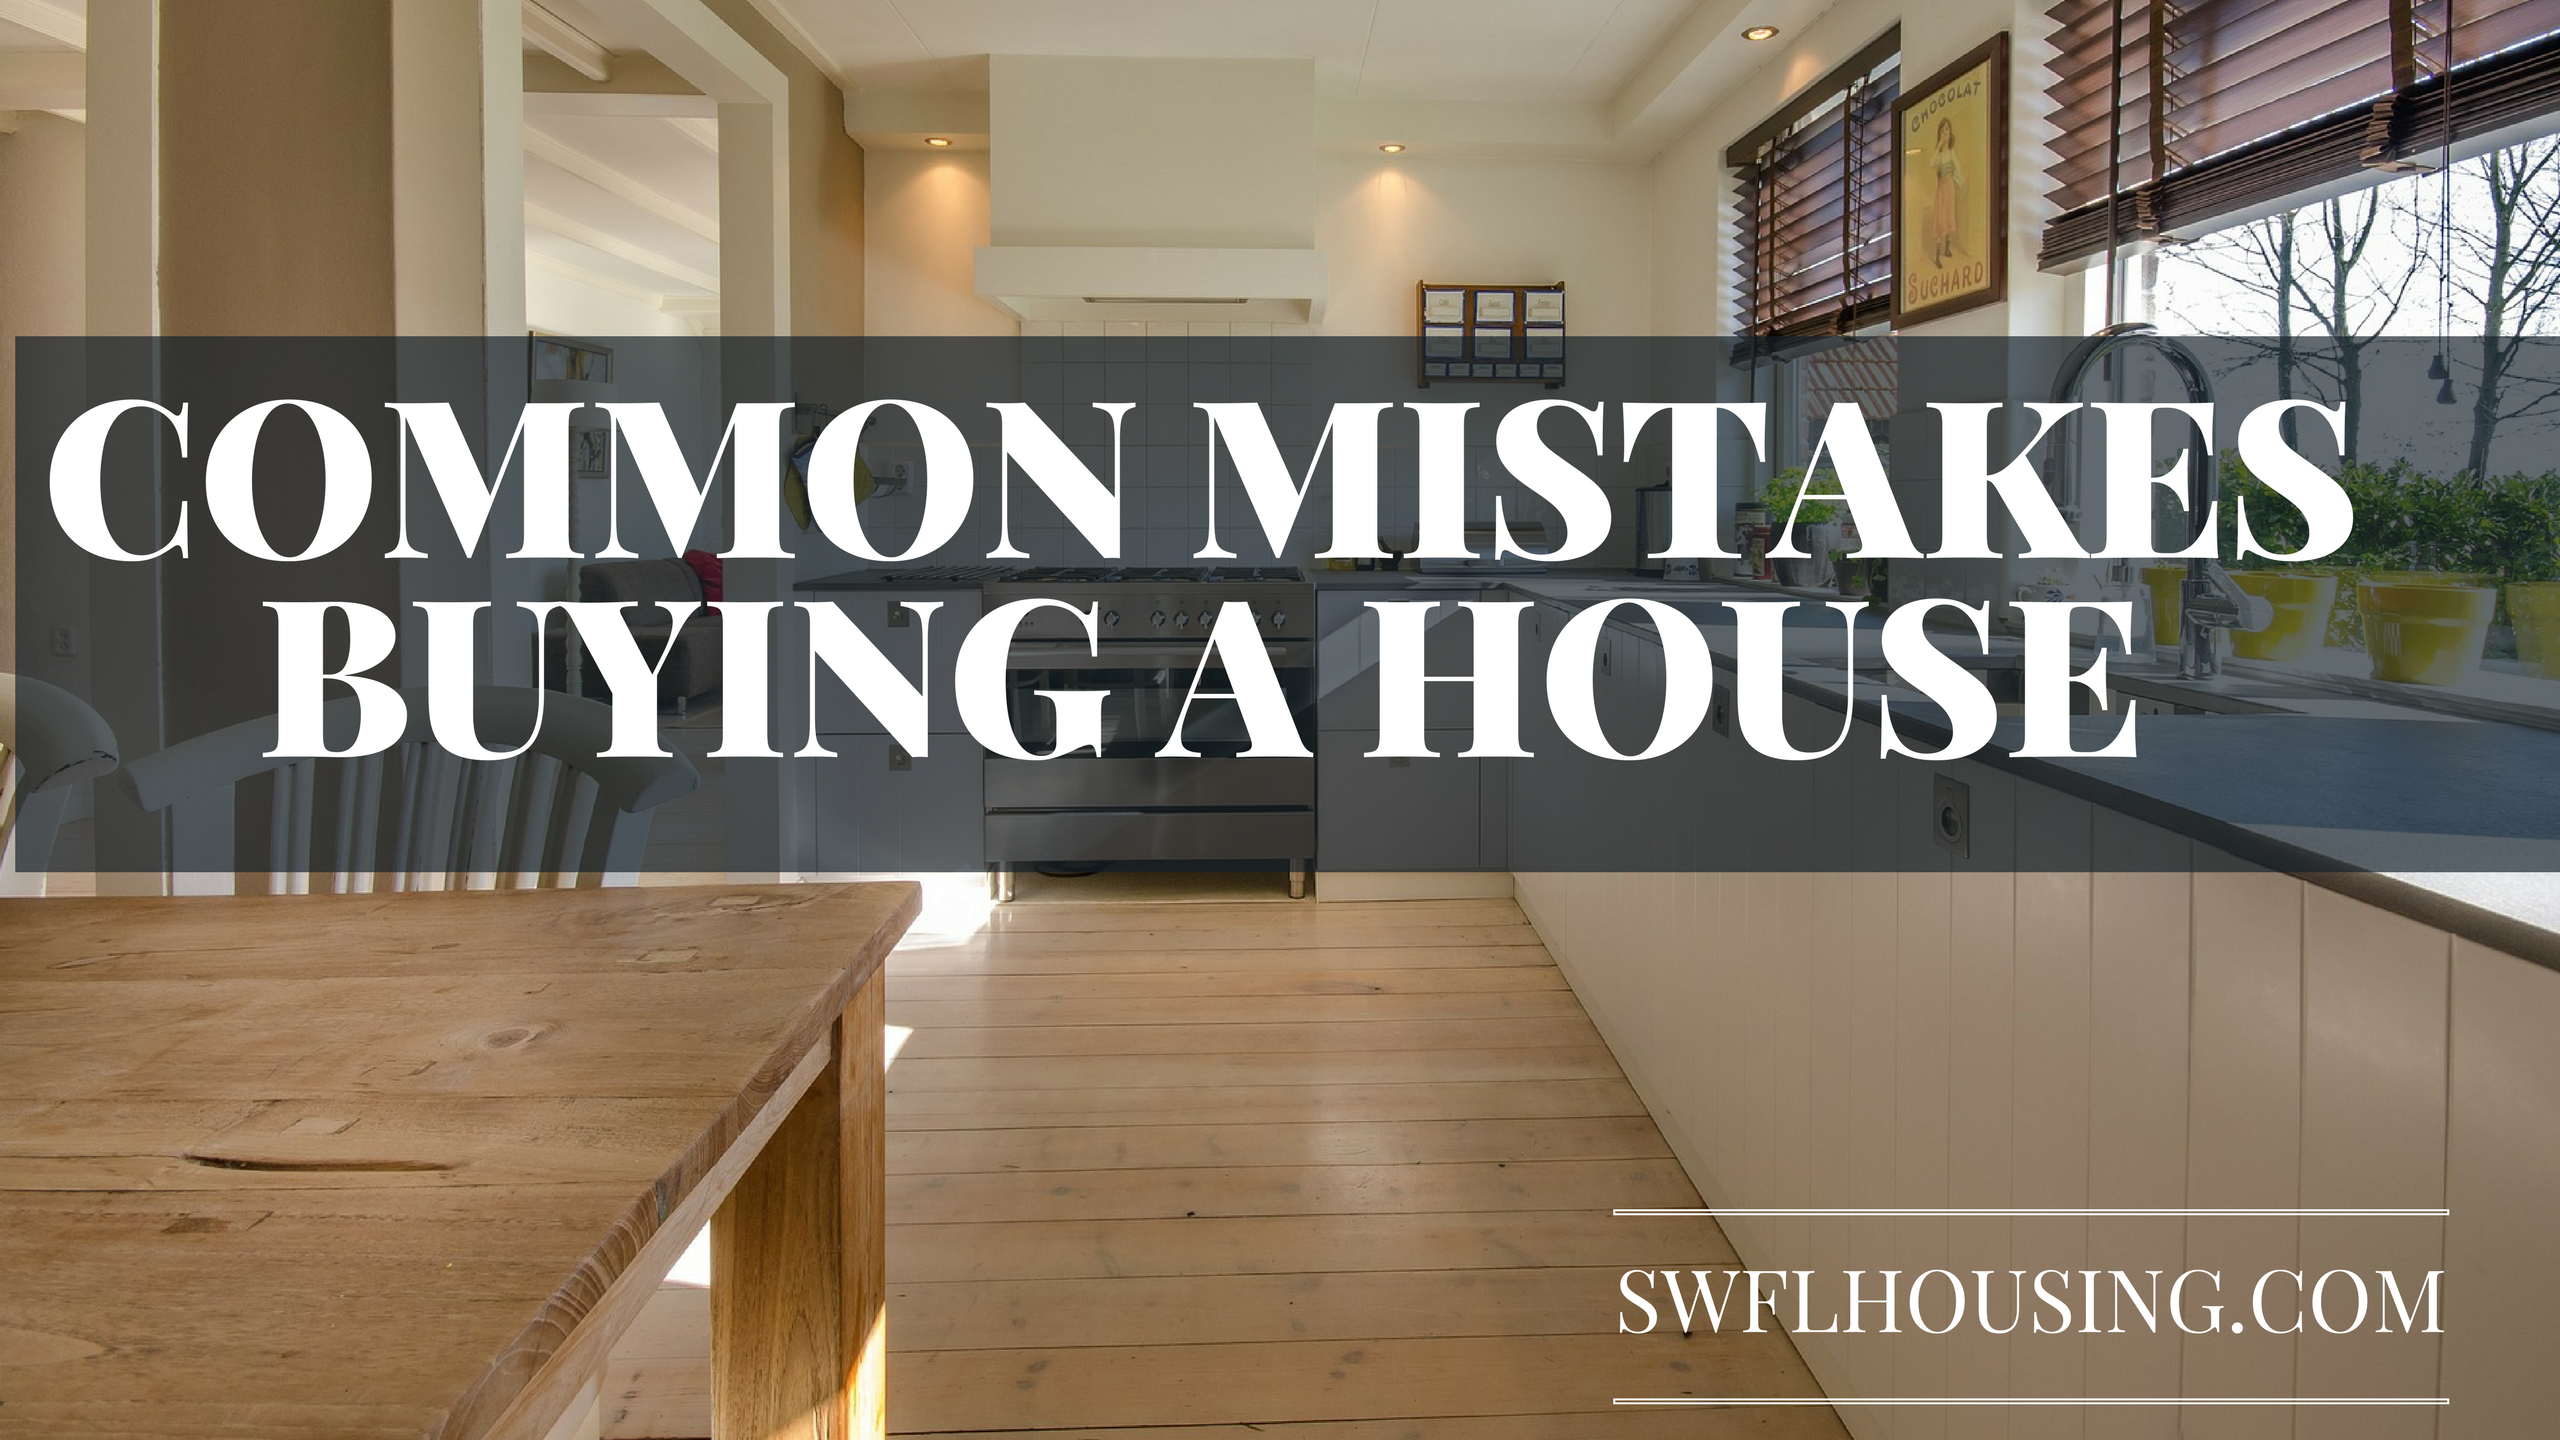 Common MISTAKES BUYING A HOUSE   homes for sale in bonita springs selling a house in bonita springs